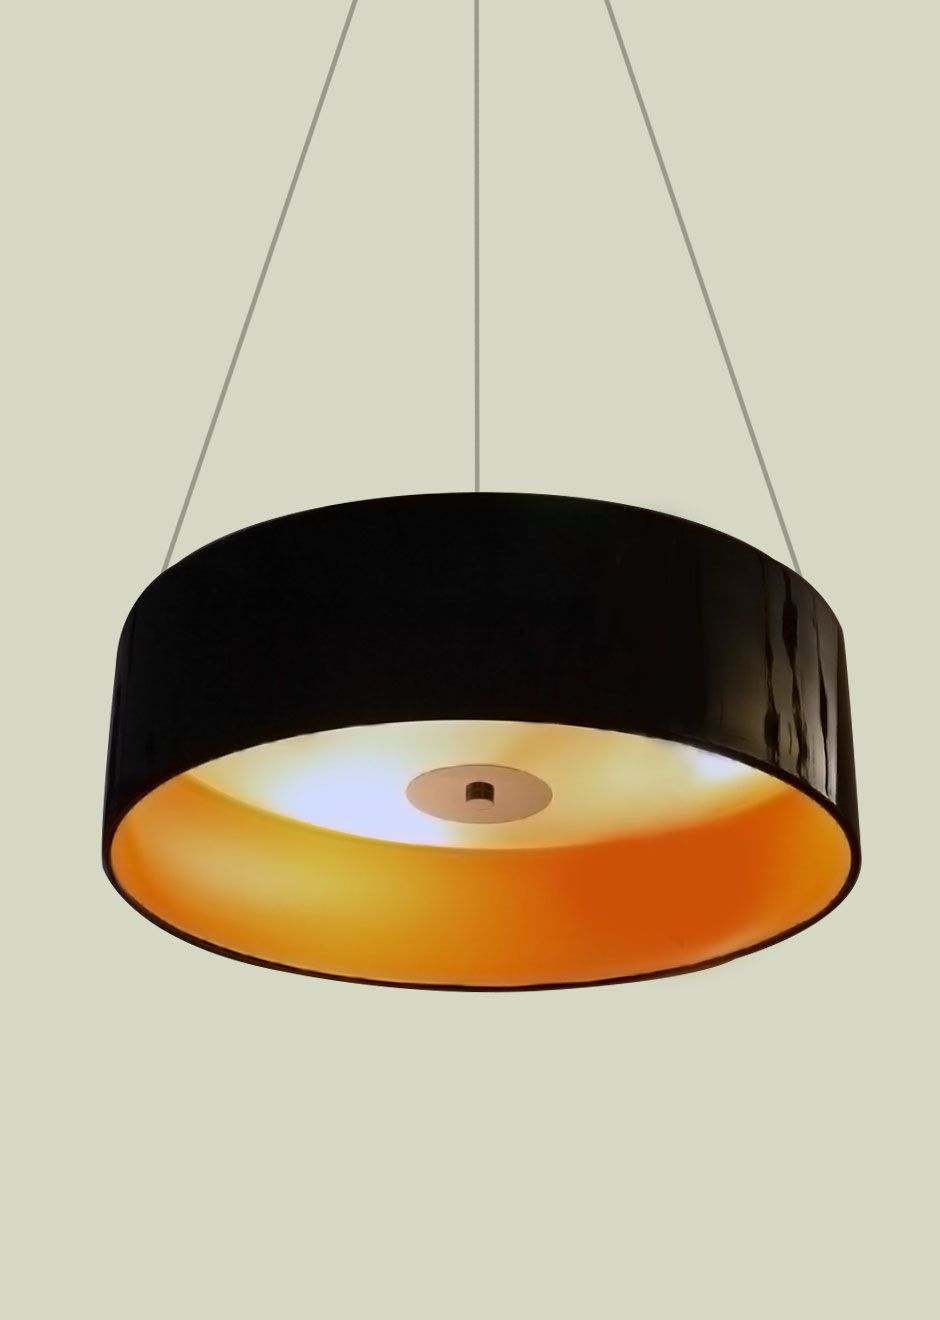 A Black Round Pendant Light by MACY. Application Ideal